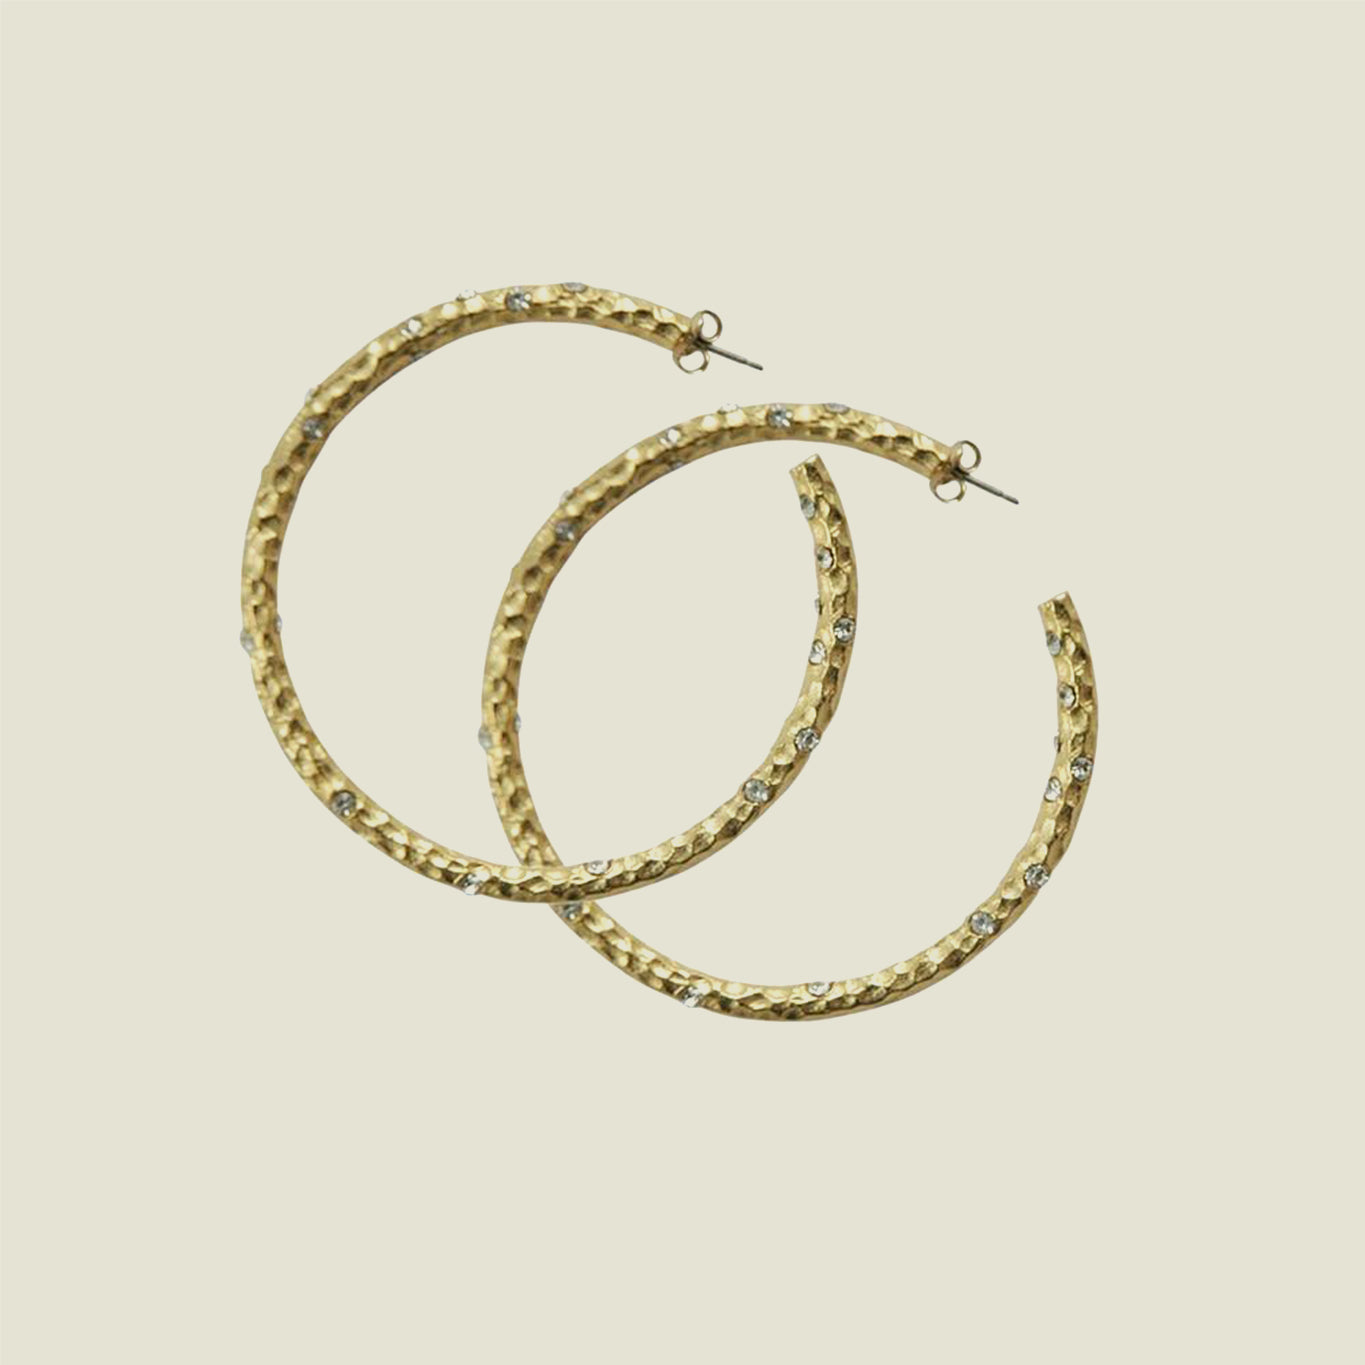 Gold Pavia Hoops w/ Crystals - Blackbird General Store